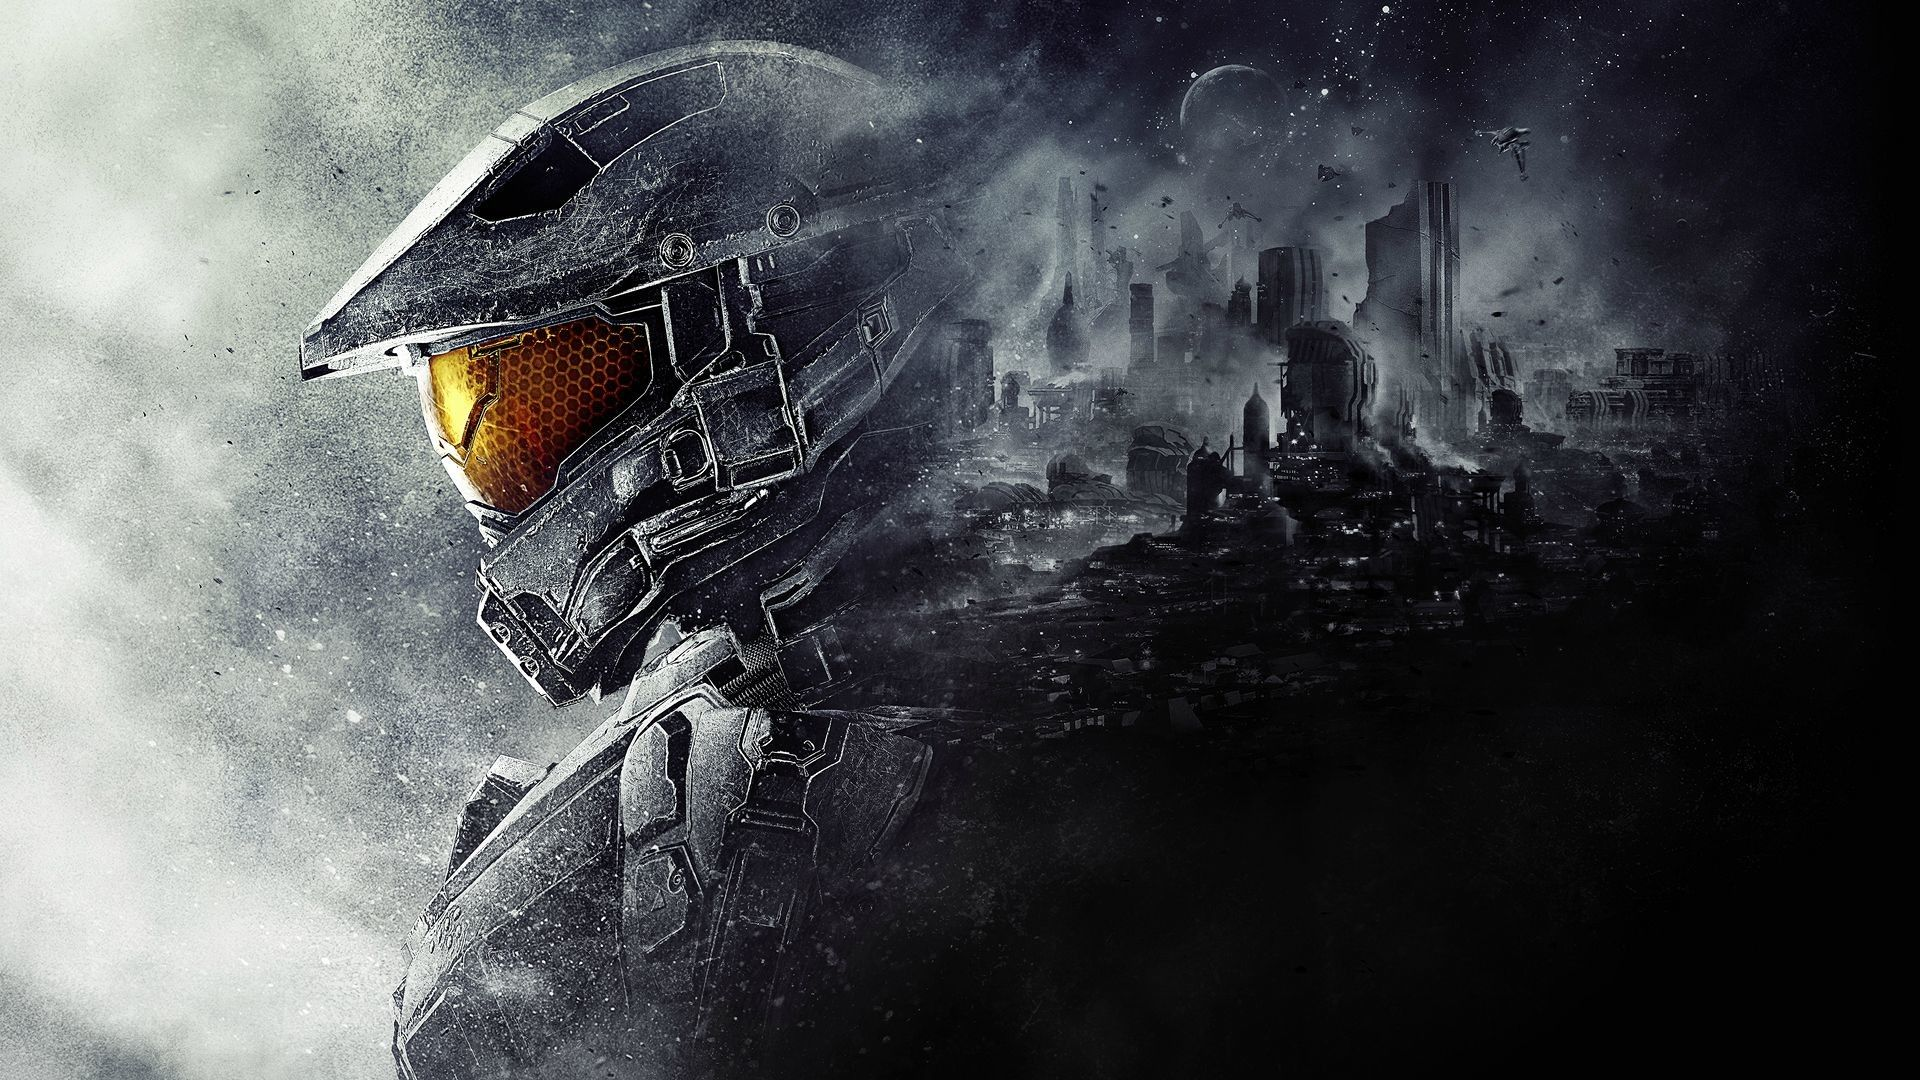 Halo 5 1920x1080 Fotos In 2019 Gaming Wallpapers Halo 5 Halo